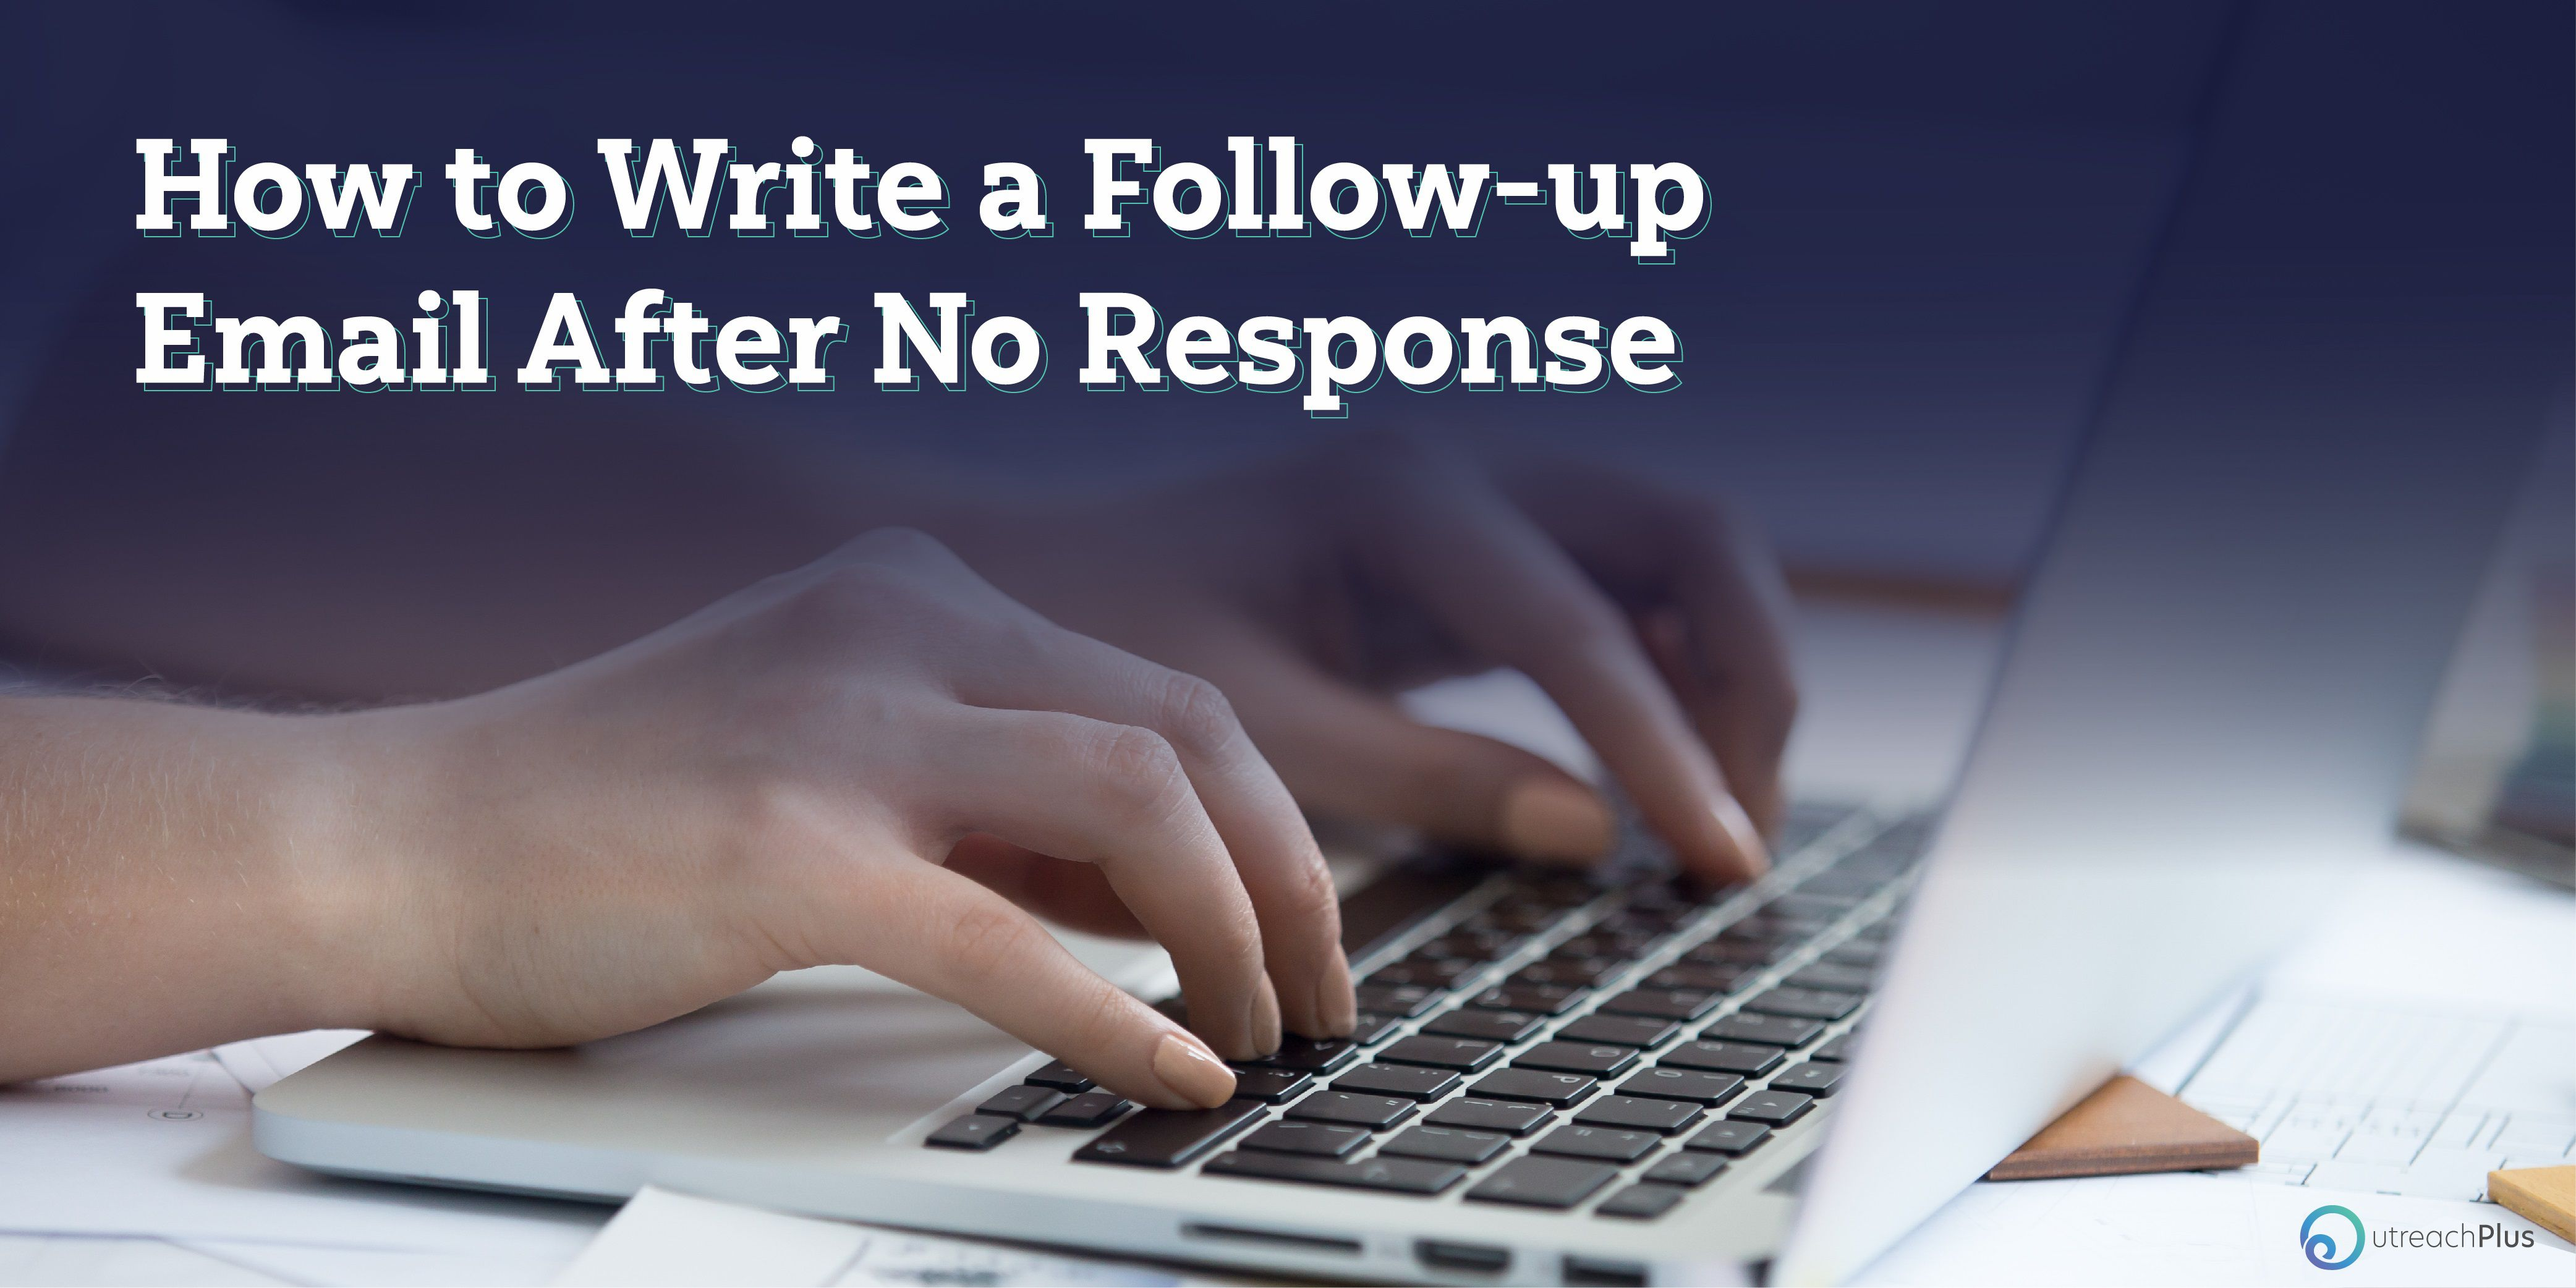 000 Breathtaking Write Follow Up Email After No Response Design Full